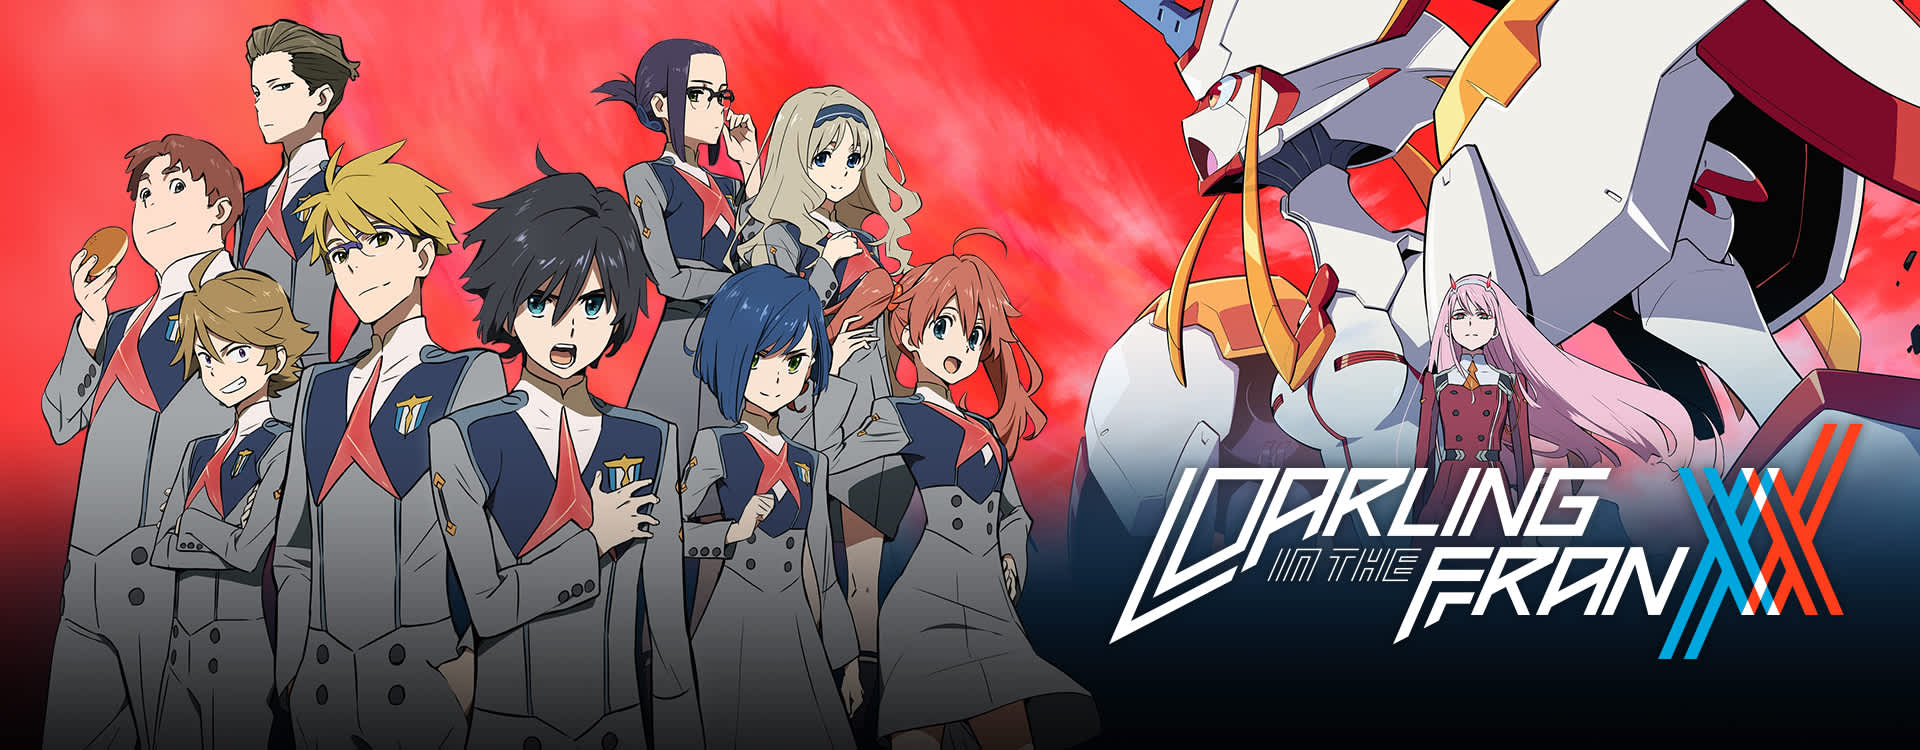 Darling in the Franxx TIC